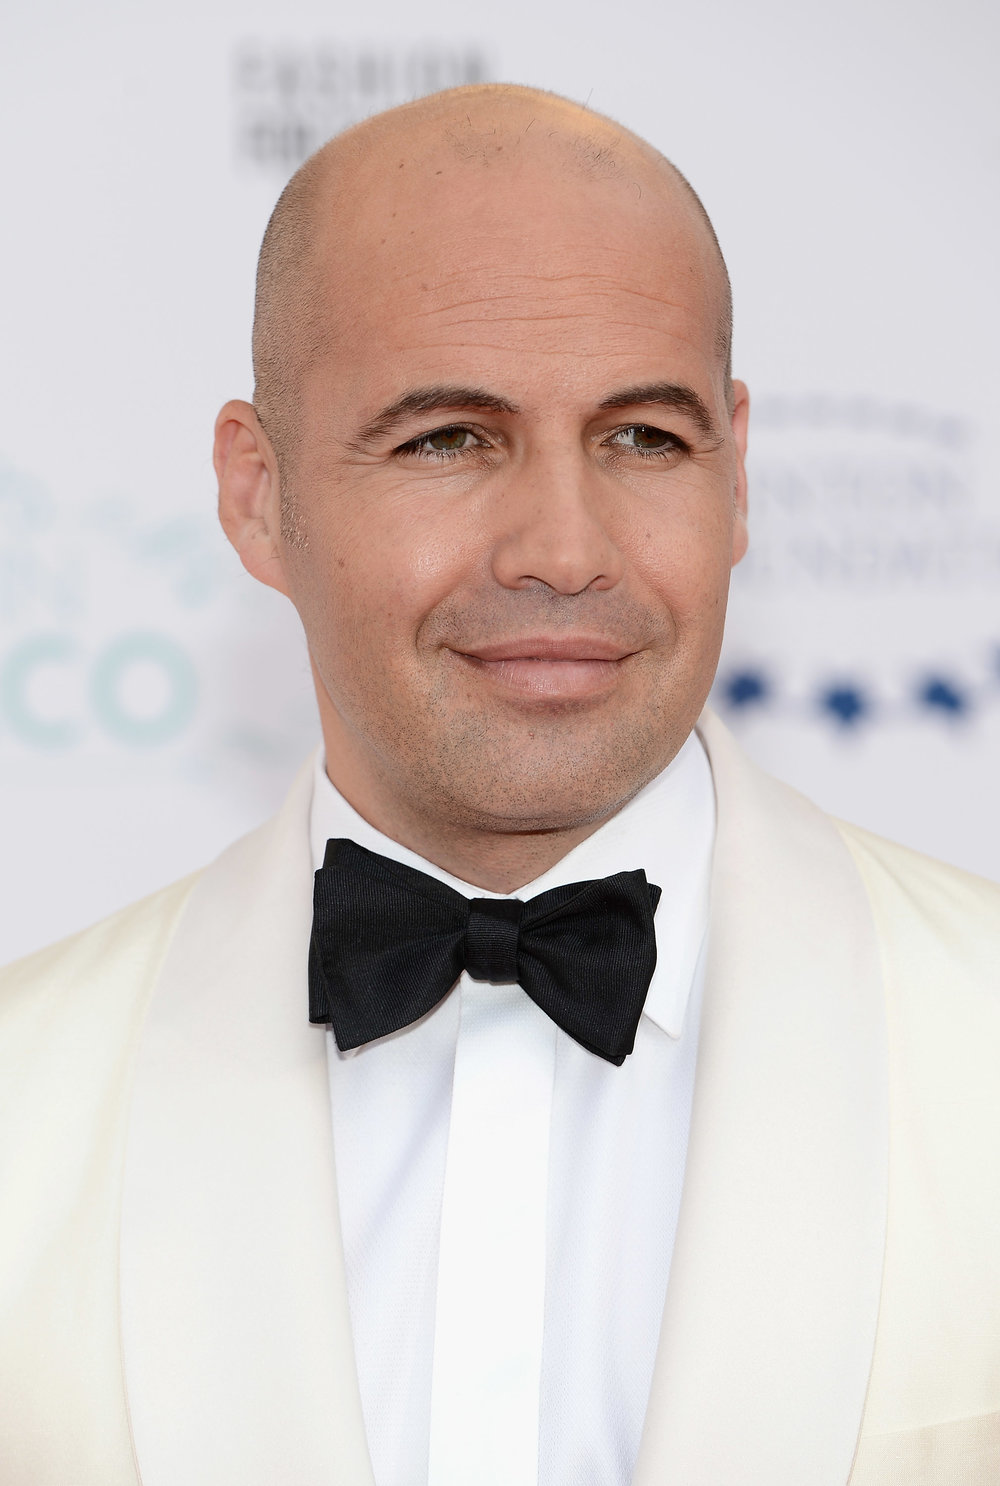 Billy+zane+bald+men+good+look.jpg